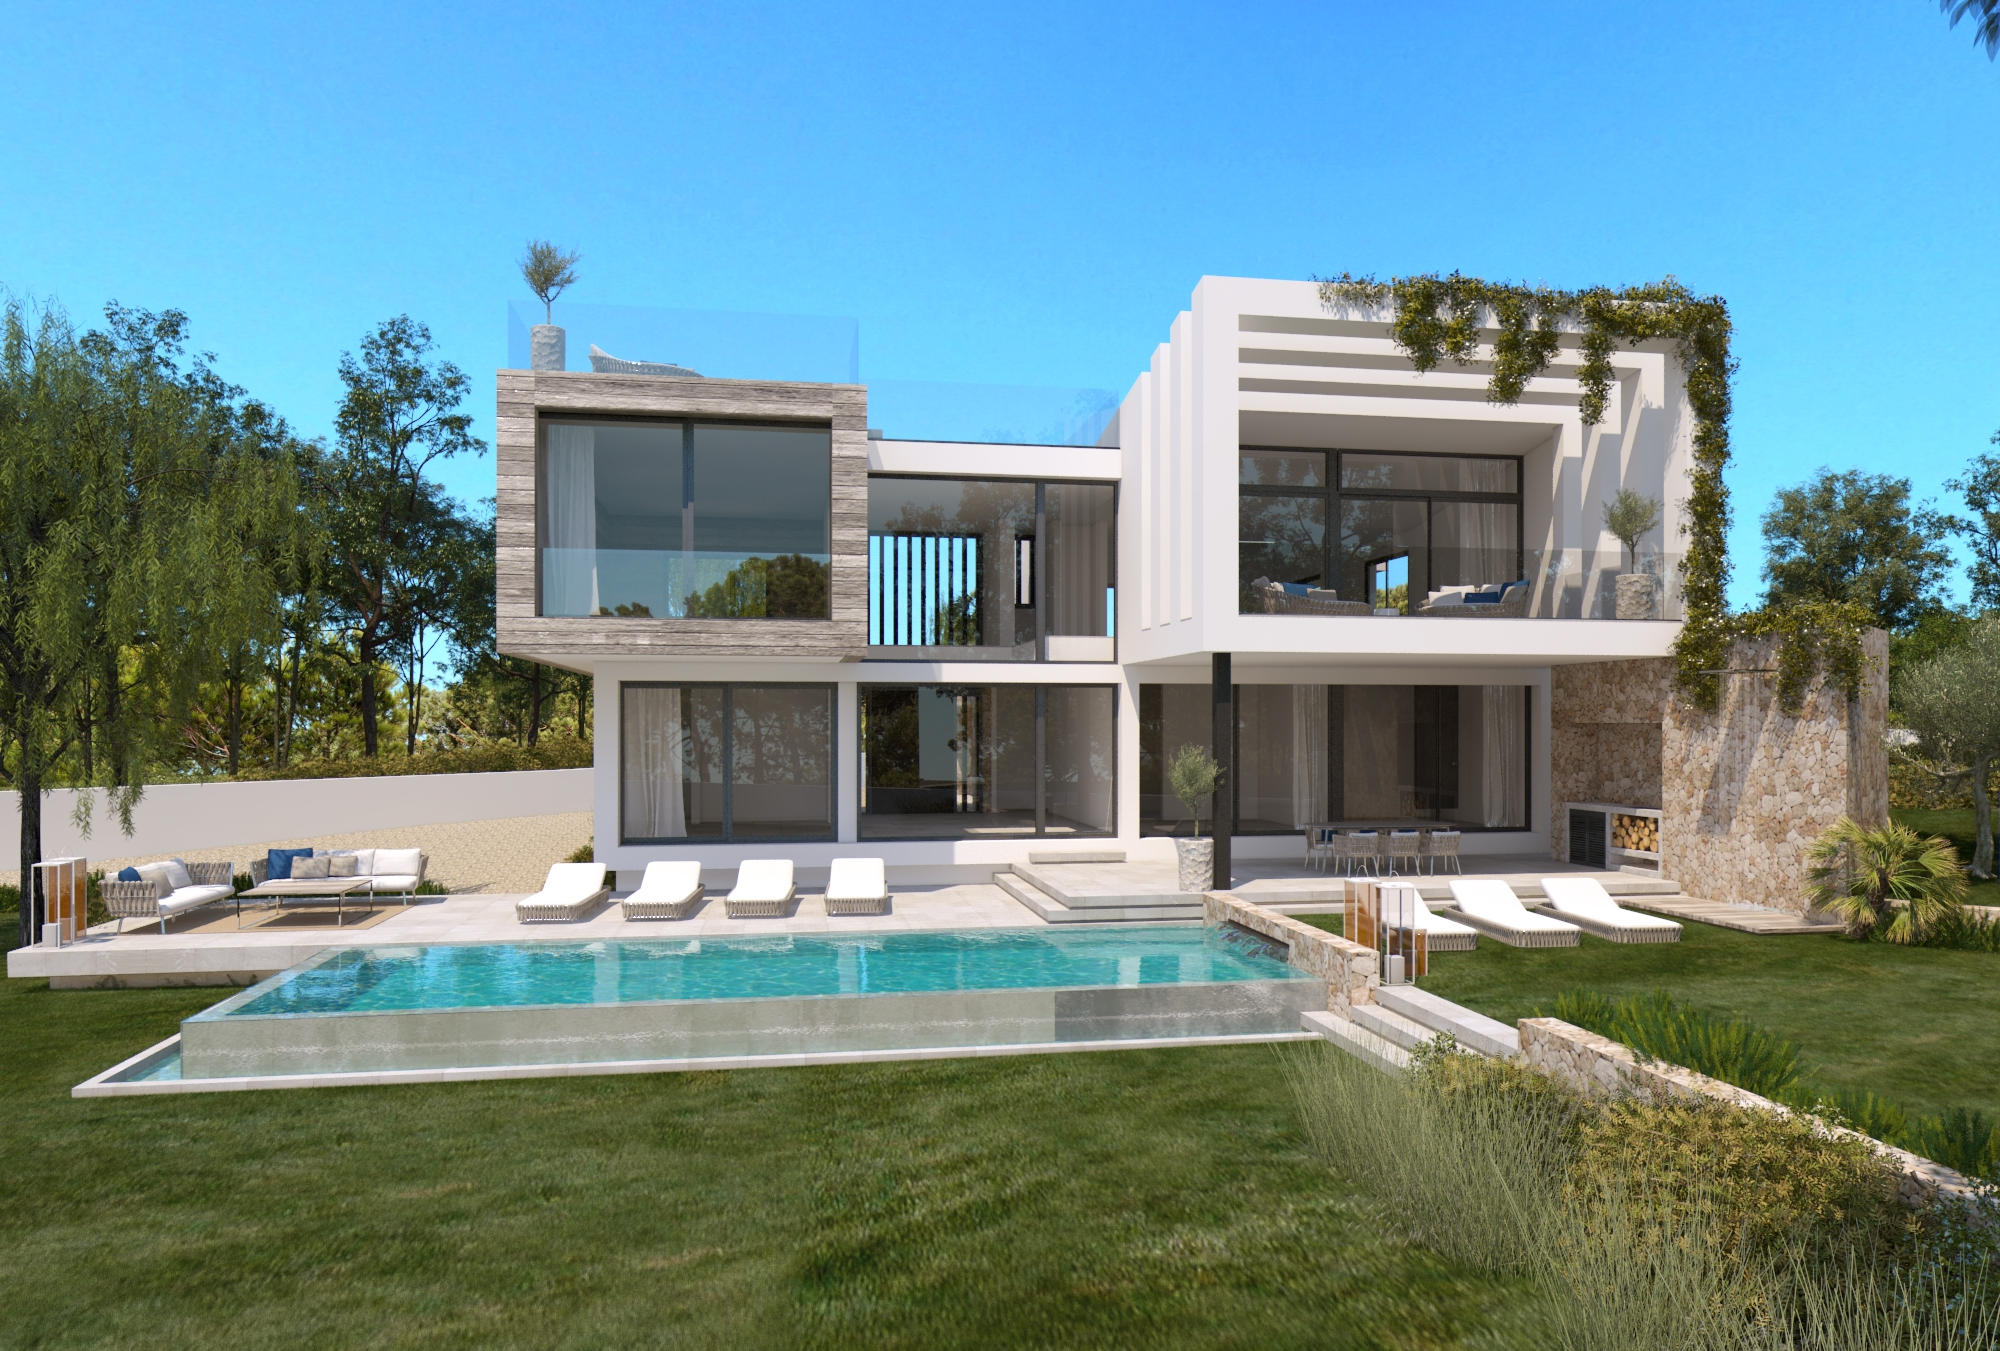 New state of the art 5 bedroom villa project in Cala Vinyes